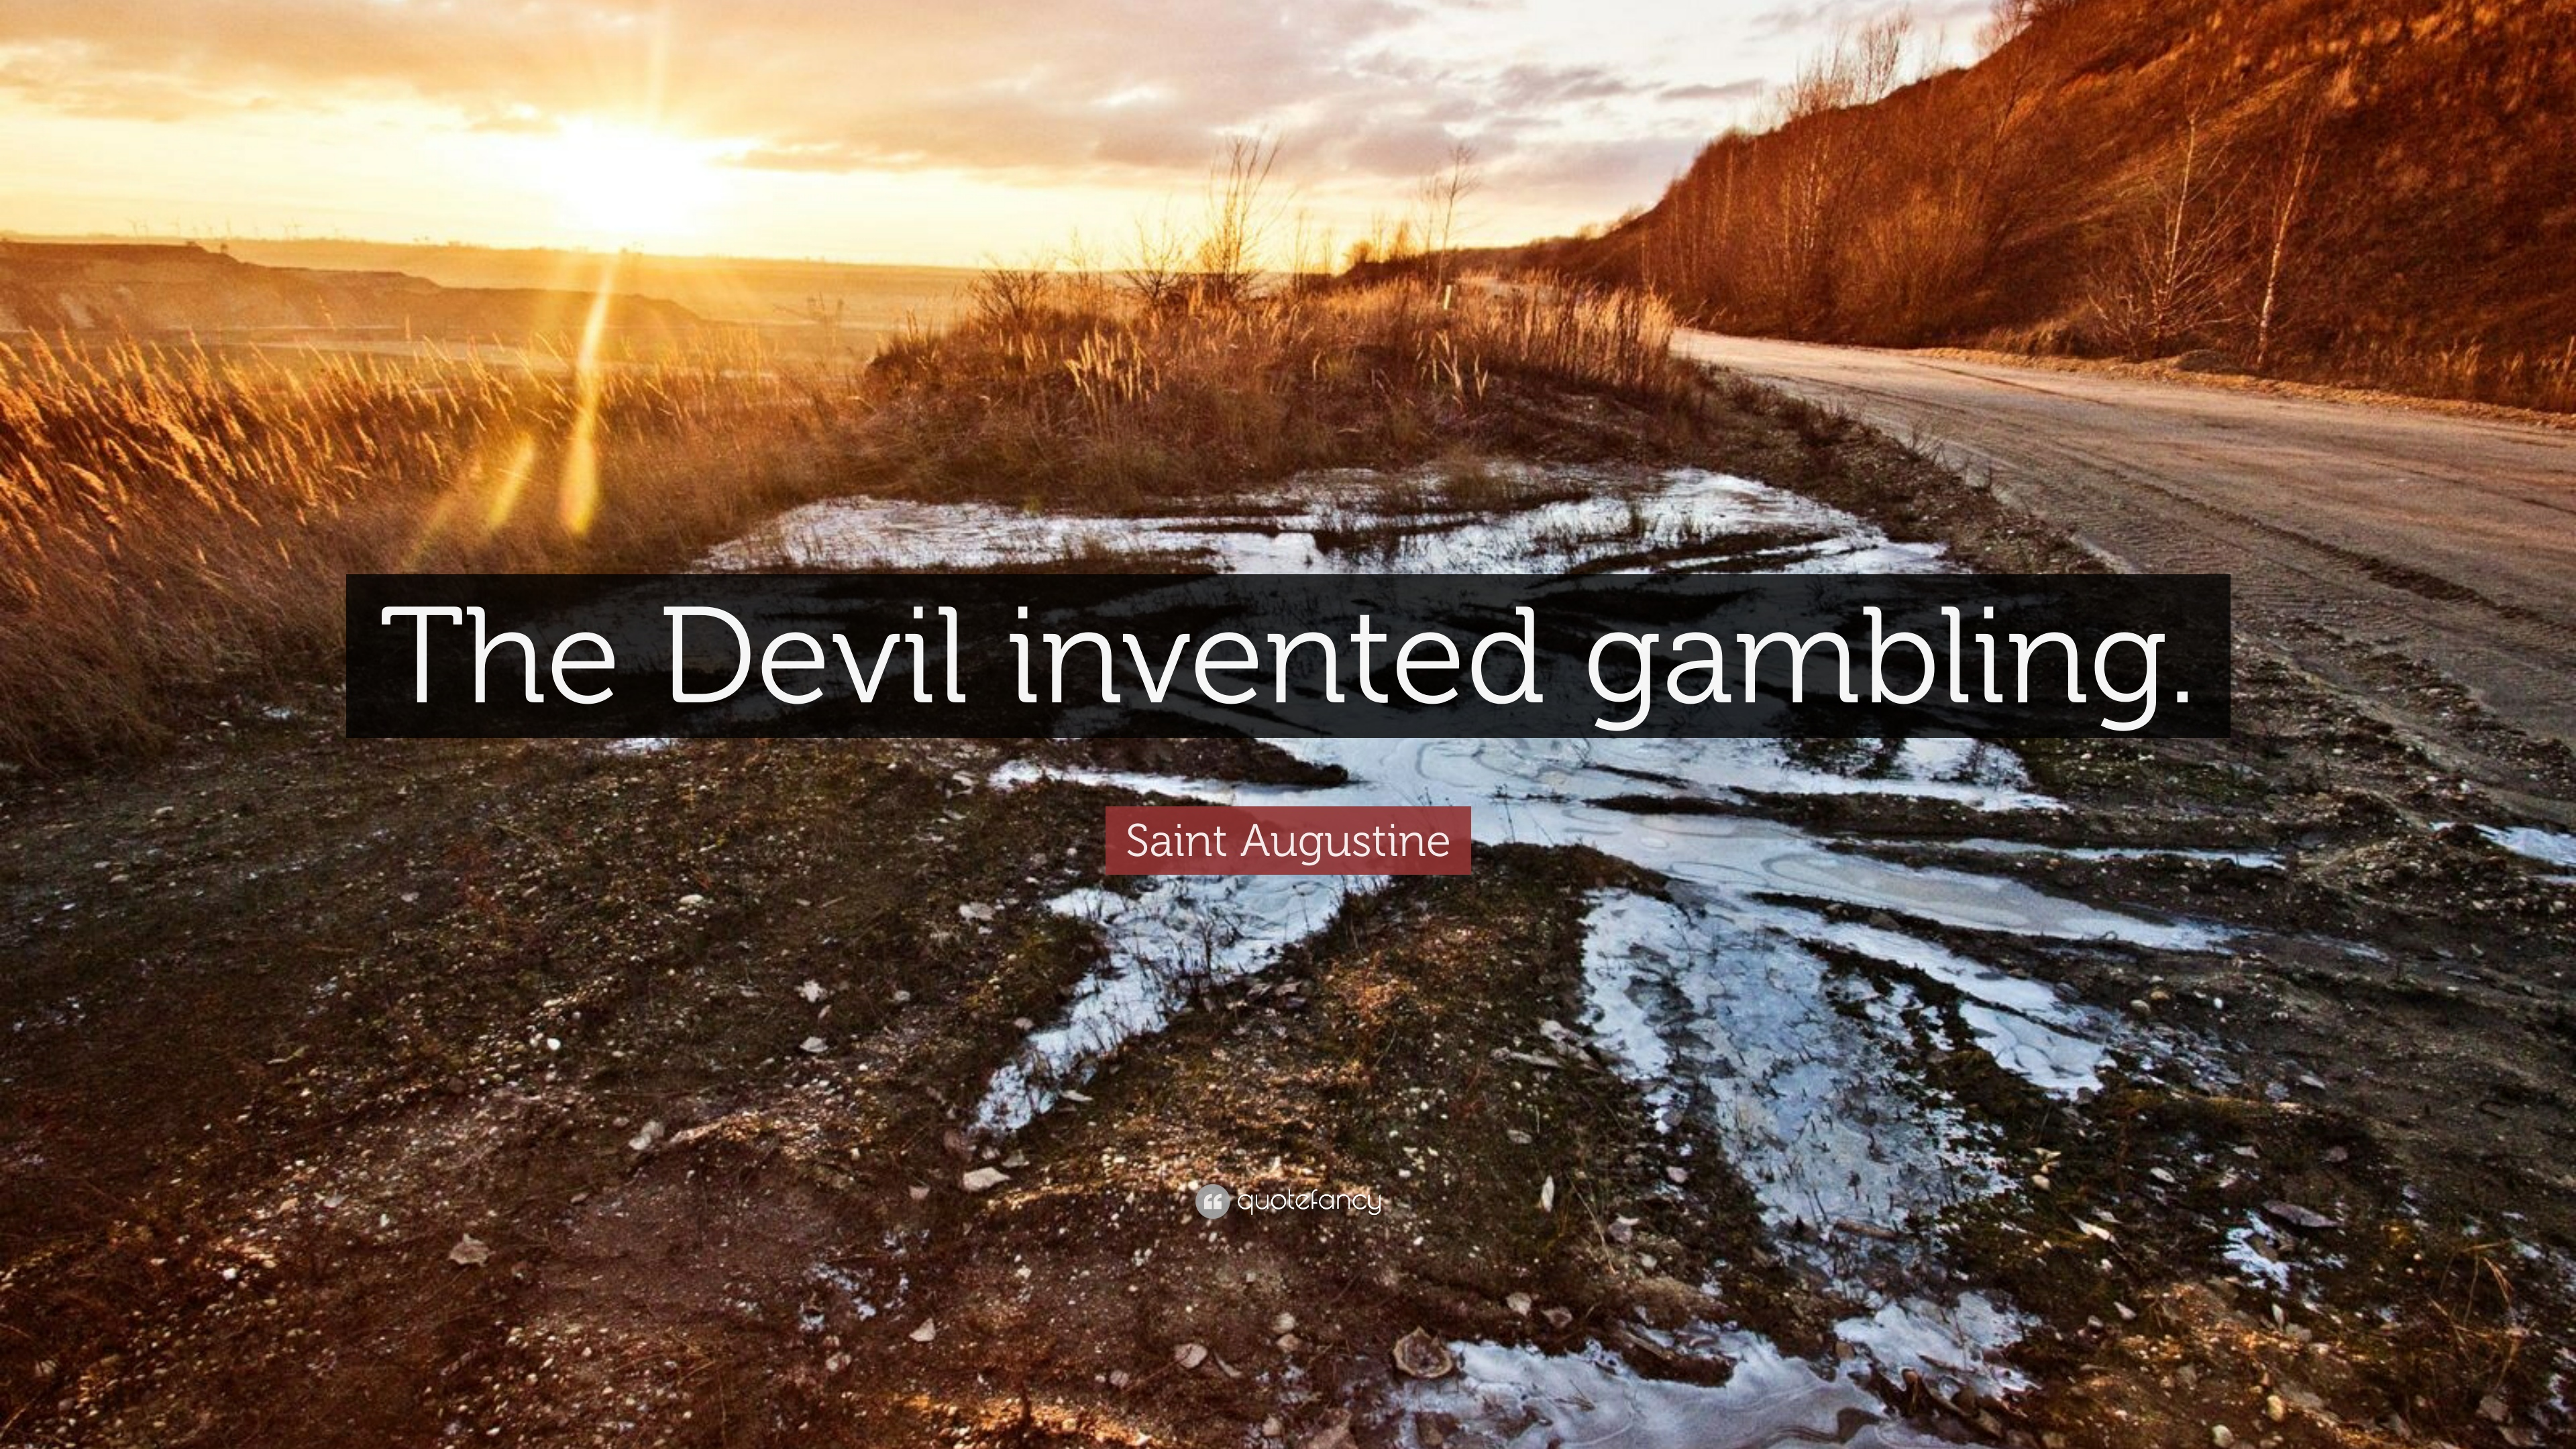 Gambling devil quotes gambling economy benefits